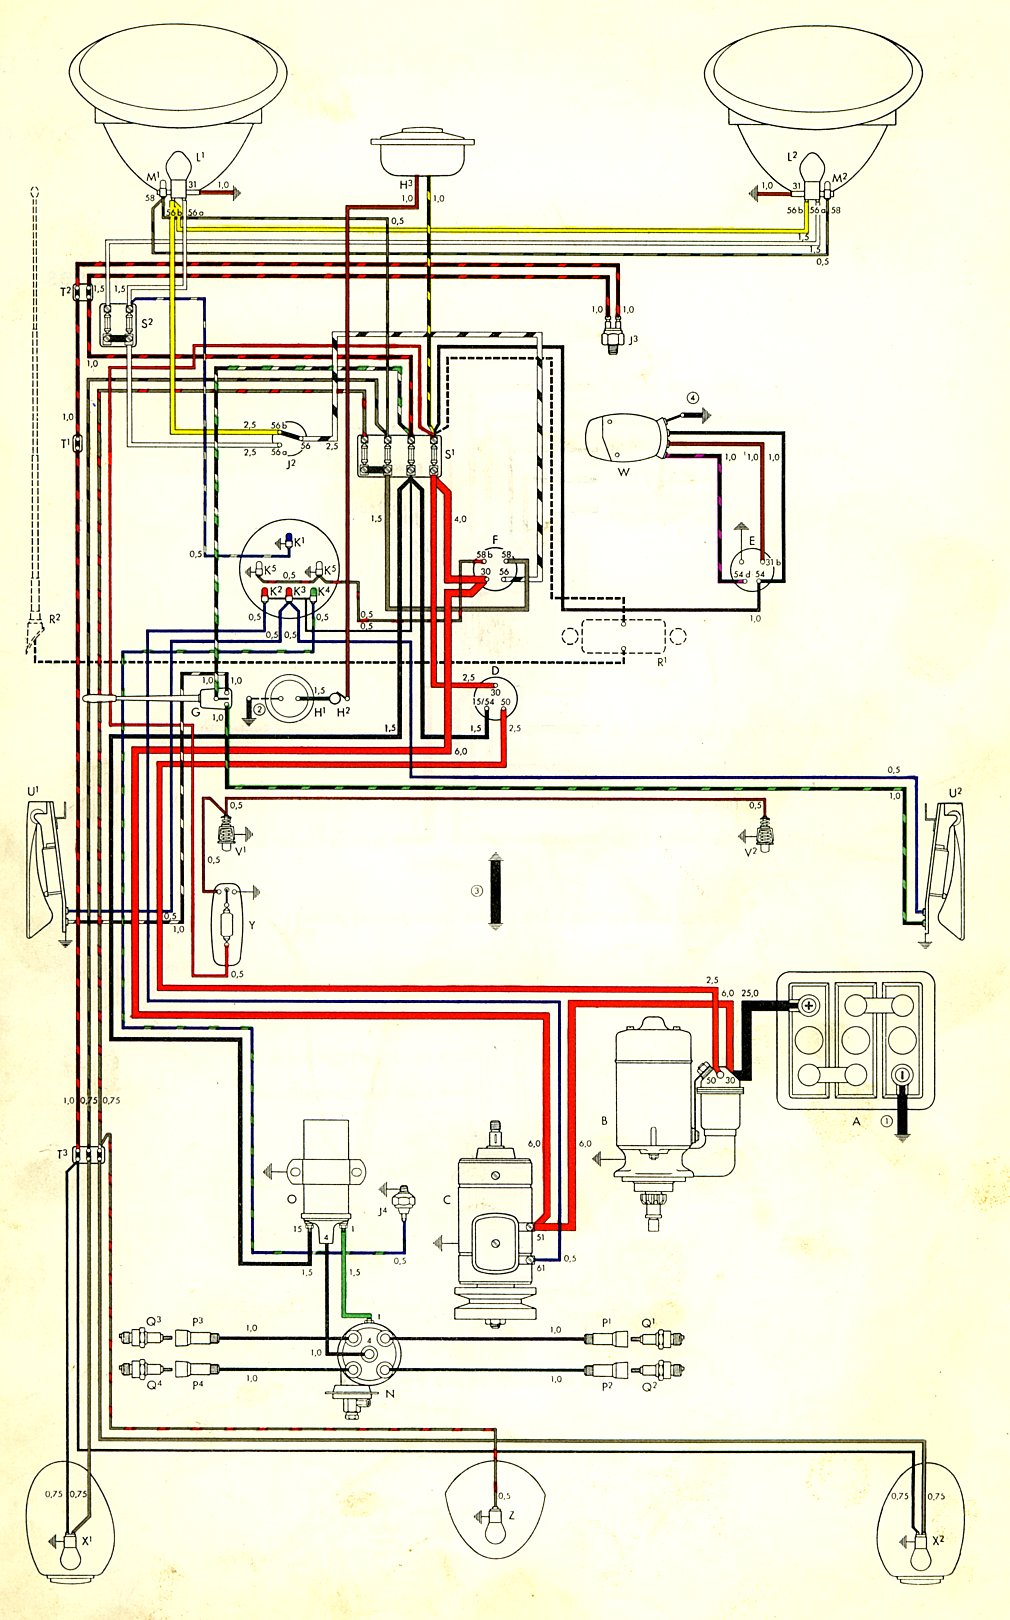 Type 1 Wiring Diagrams 1955 Ford Horn Diagram